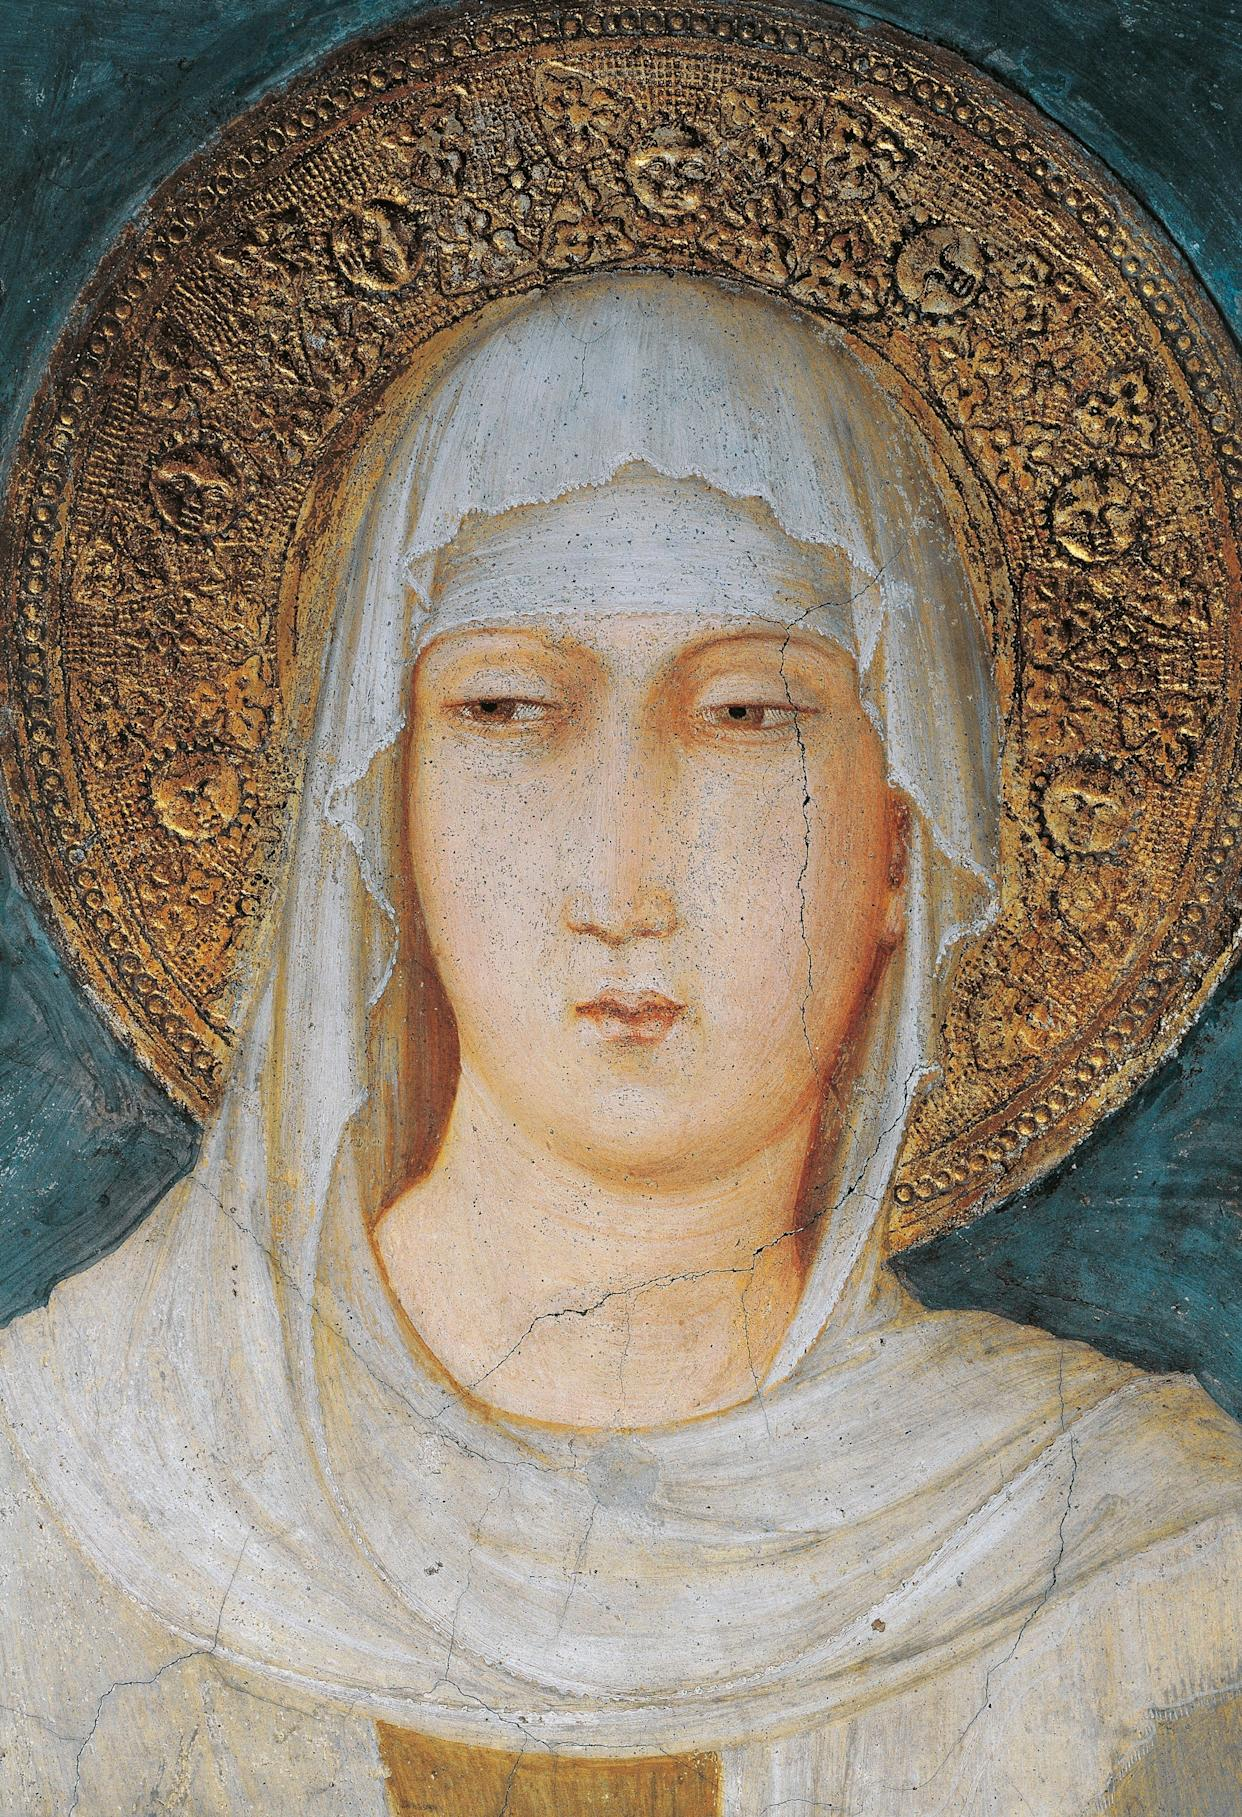 <span>Clare of Assisi</span>&amp;nbsp;shunned a life of luxury in her wealthy Italian family to devote herself to the burgeoning order of Francis of Assisi. When her parents promised her hand in marriage to a wealthy man in 1211, Clare fled for the Porziuncola Chapel and was taken in by Francis. She took vows dedicating her life to God, and Francis placed Clare provisionally with the Benedictine nuns of San Paolo. Her family, furious at Clare&amp;rsquo;s secret flight, went there to try to drag her home by force, but Clare was resolute. Clare&amp;rsquo;s piety was so profound that her sister, mother and several other female relatives eventually came to live with her and be her disciples in her convent outside Assisi. The group came to be known as the &amp;ldquo;Poor Clares&amp;rdquo; and walked barefoot, slept on the ground, abstained from meat, and spoke only when necessary. Clare died in 1253 and was <span>canonized</span>&amp;nbsp;two years later by Pope Alexander IV.